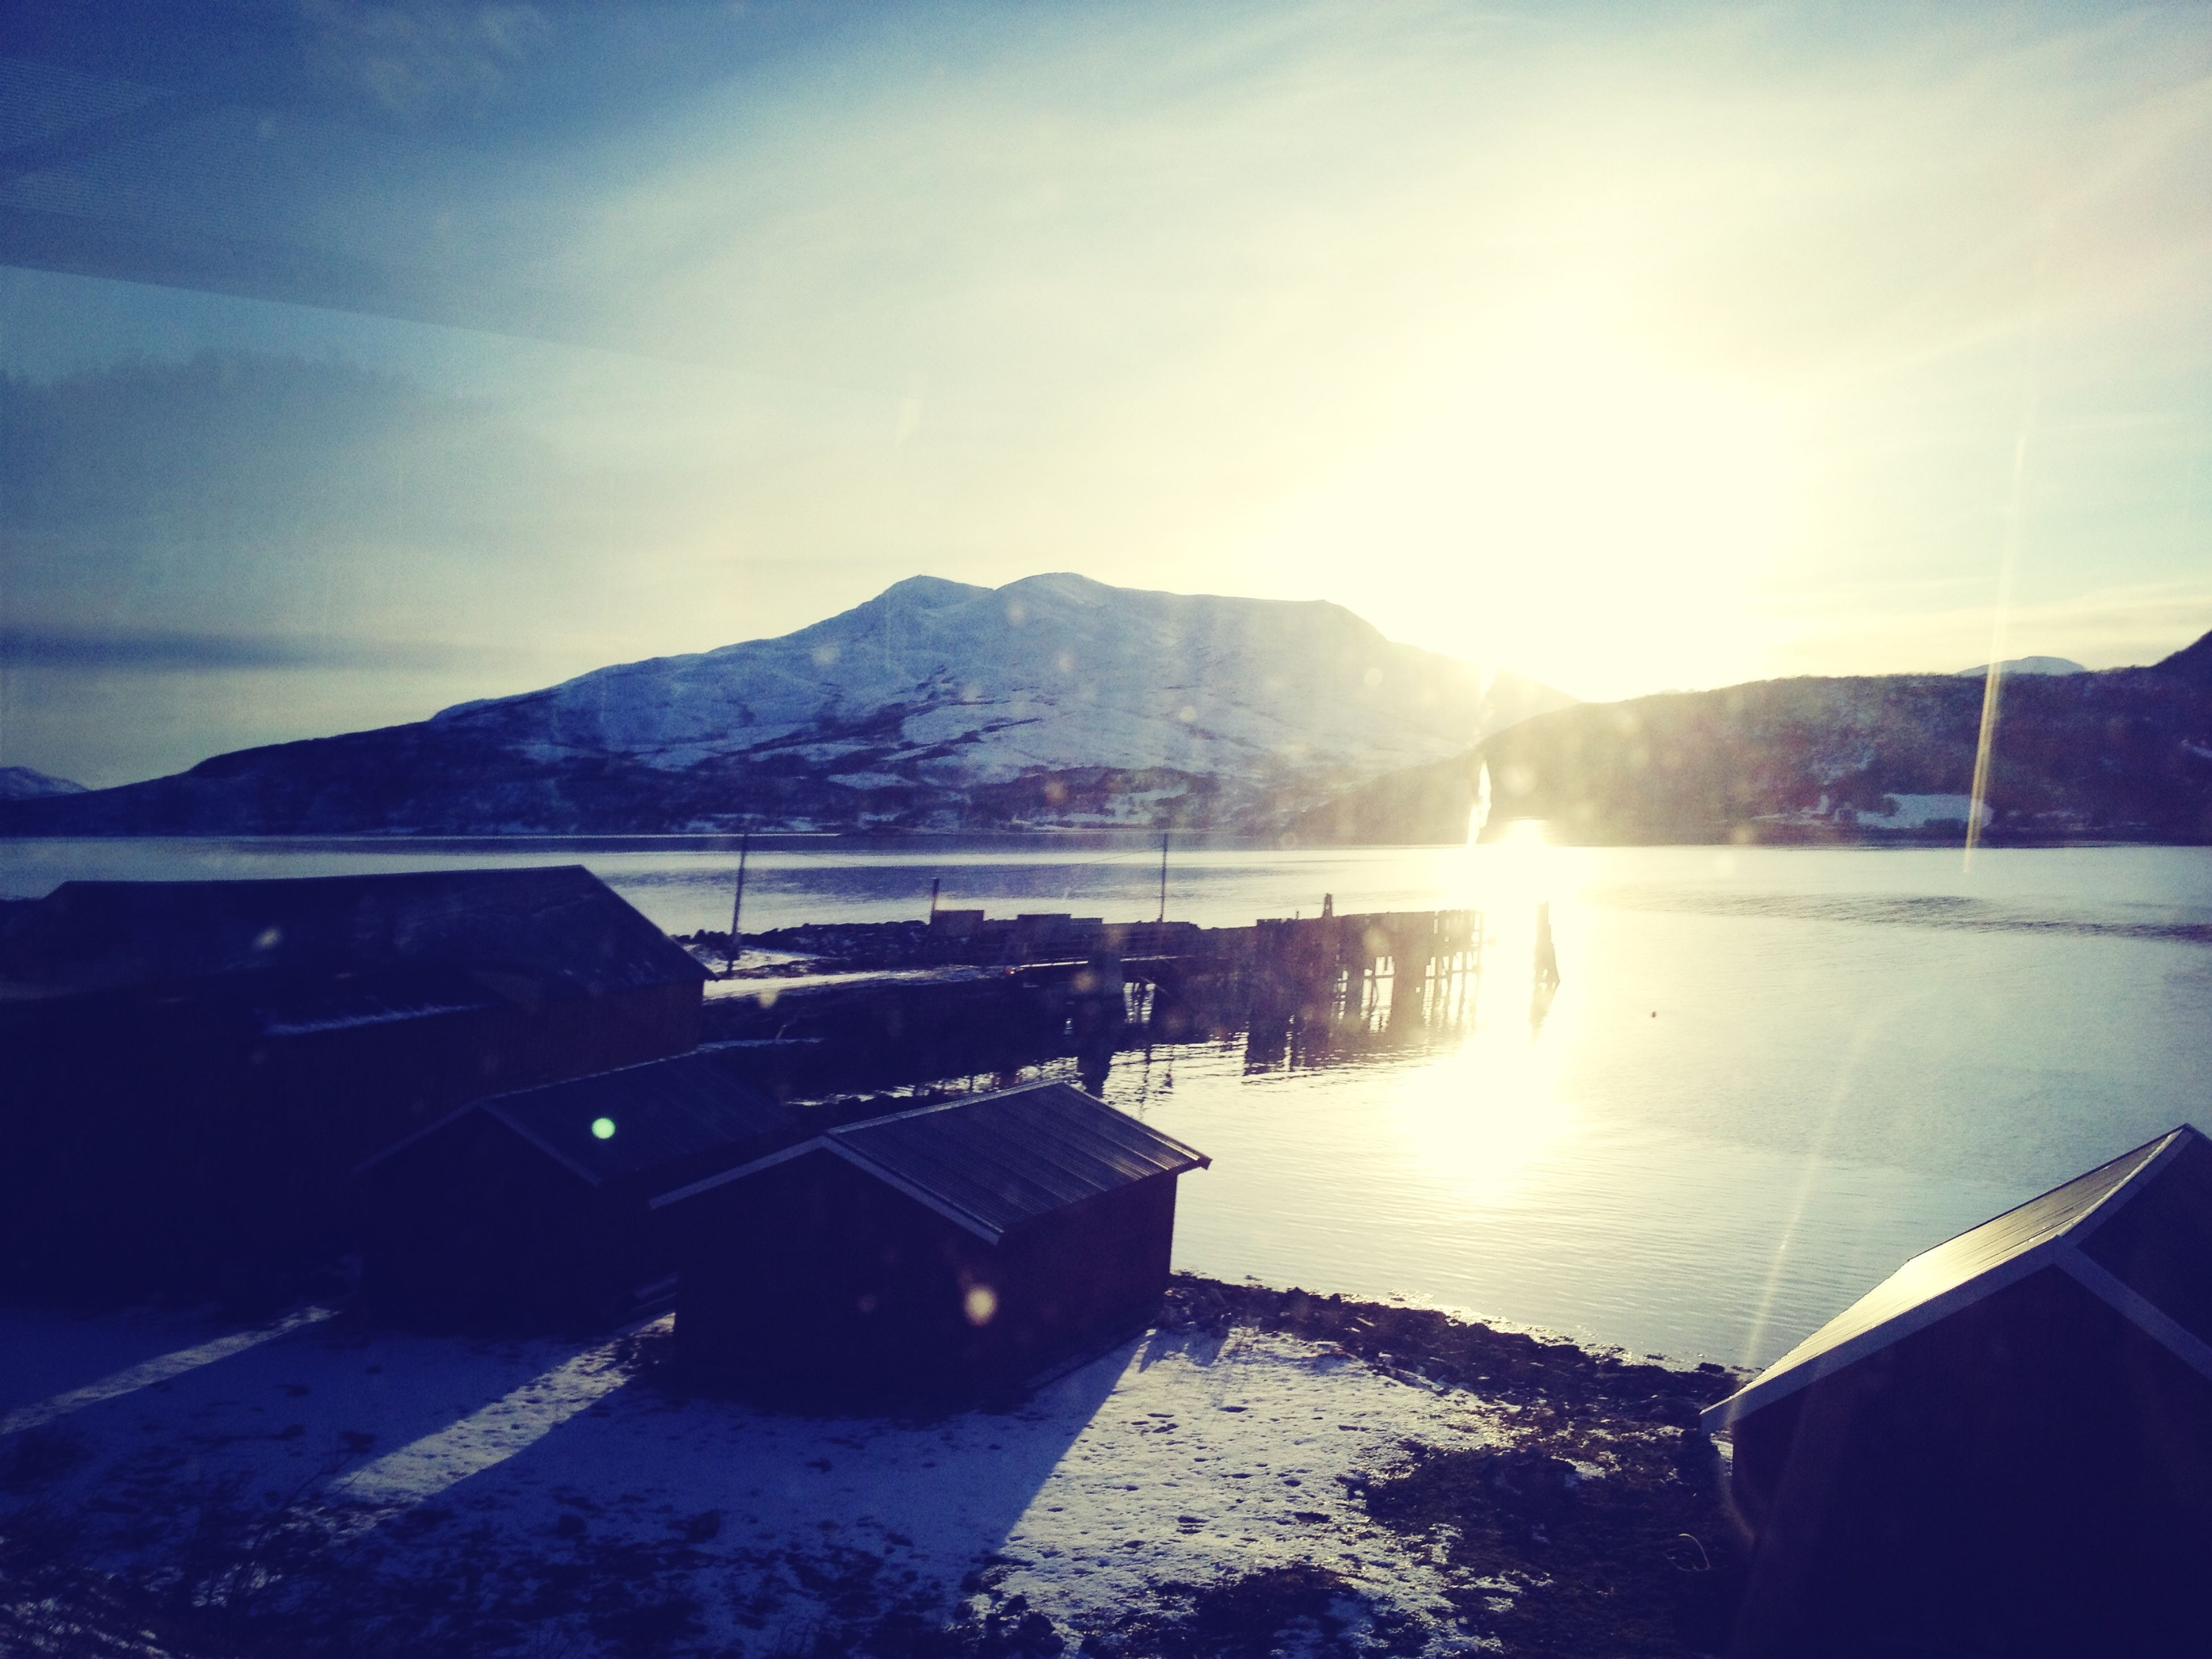 mountain, mountain range, snow, winter, cold temperature, sky, sun, scenics, tranquil scene, beauty in nature, water, tranquility, sunbeam, sunlight, nature, lake, cloud - sky, weather, season, lens flare